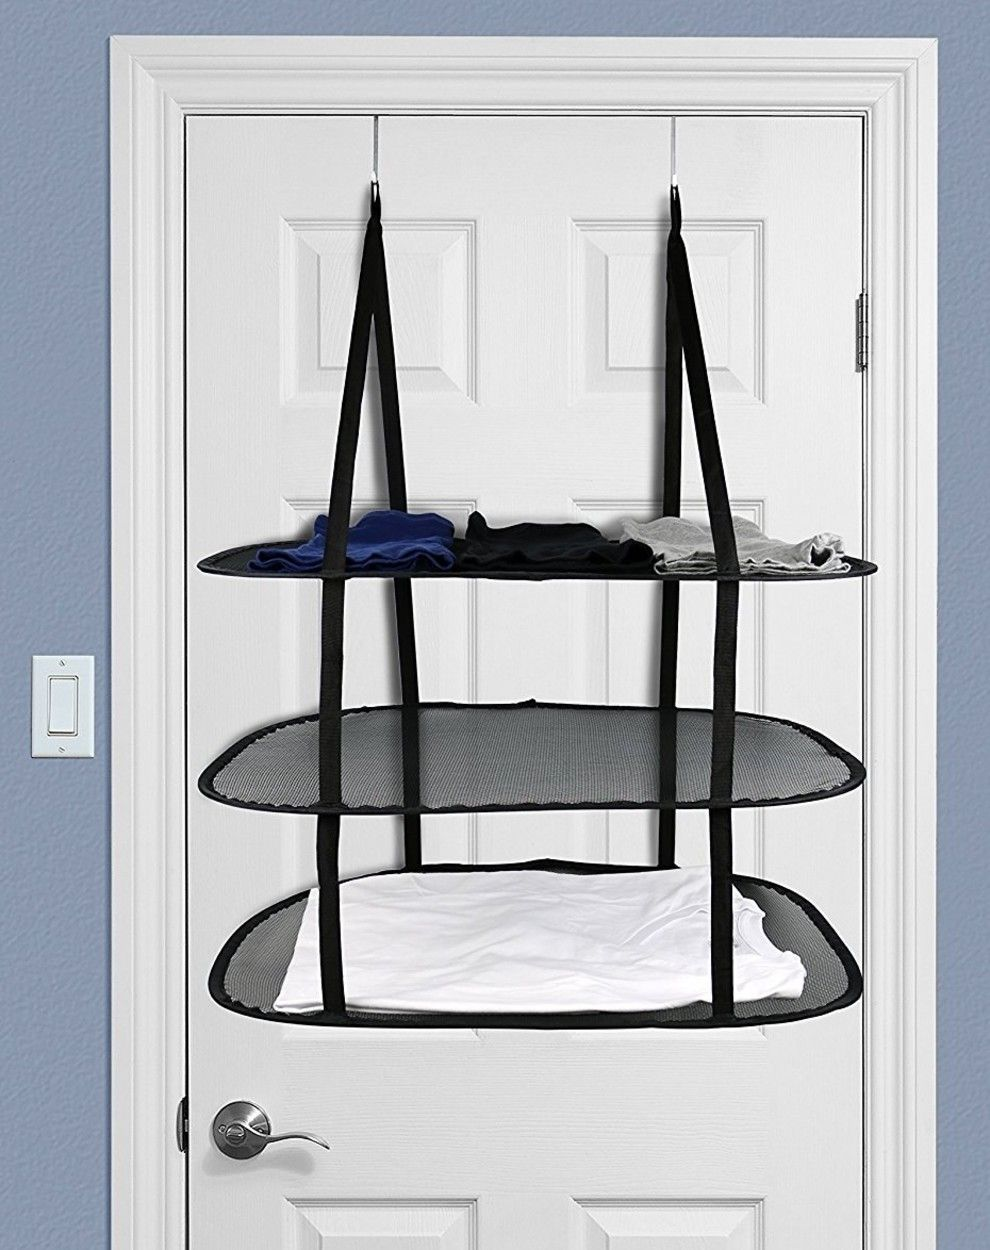 An overthedoor drying rack to solve the annoying lay